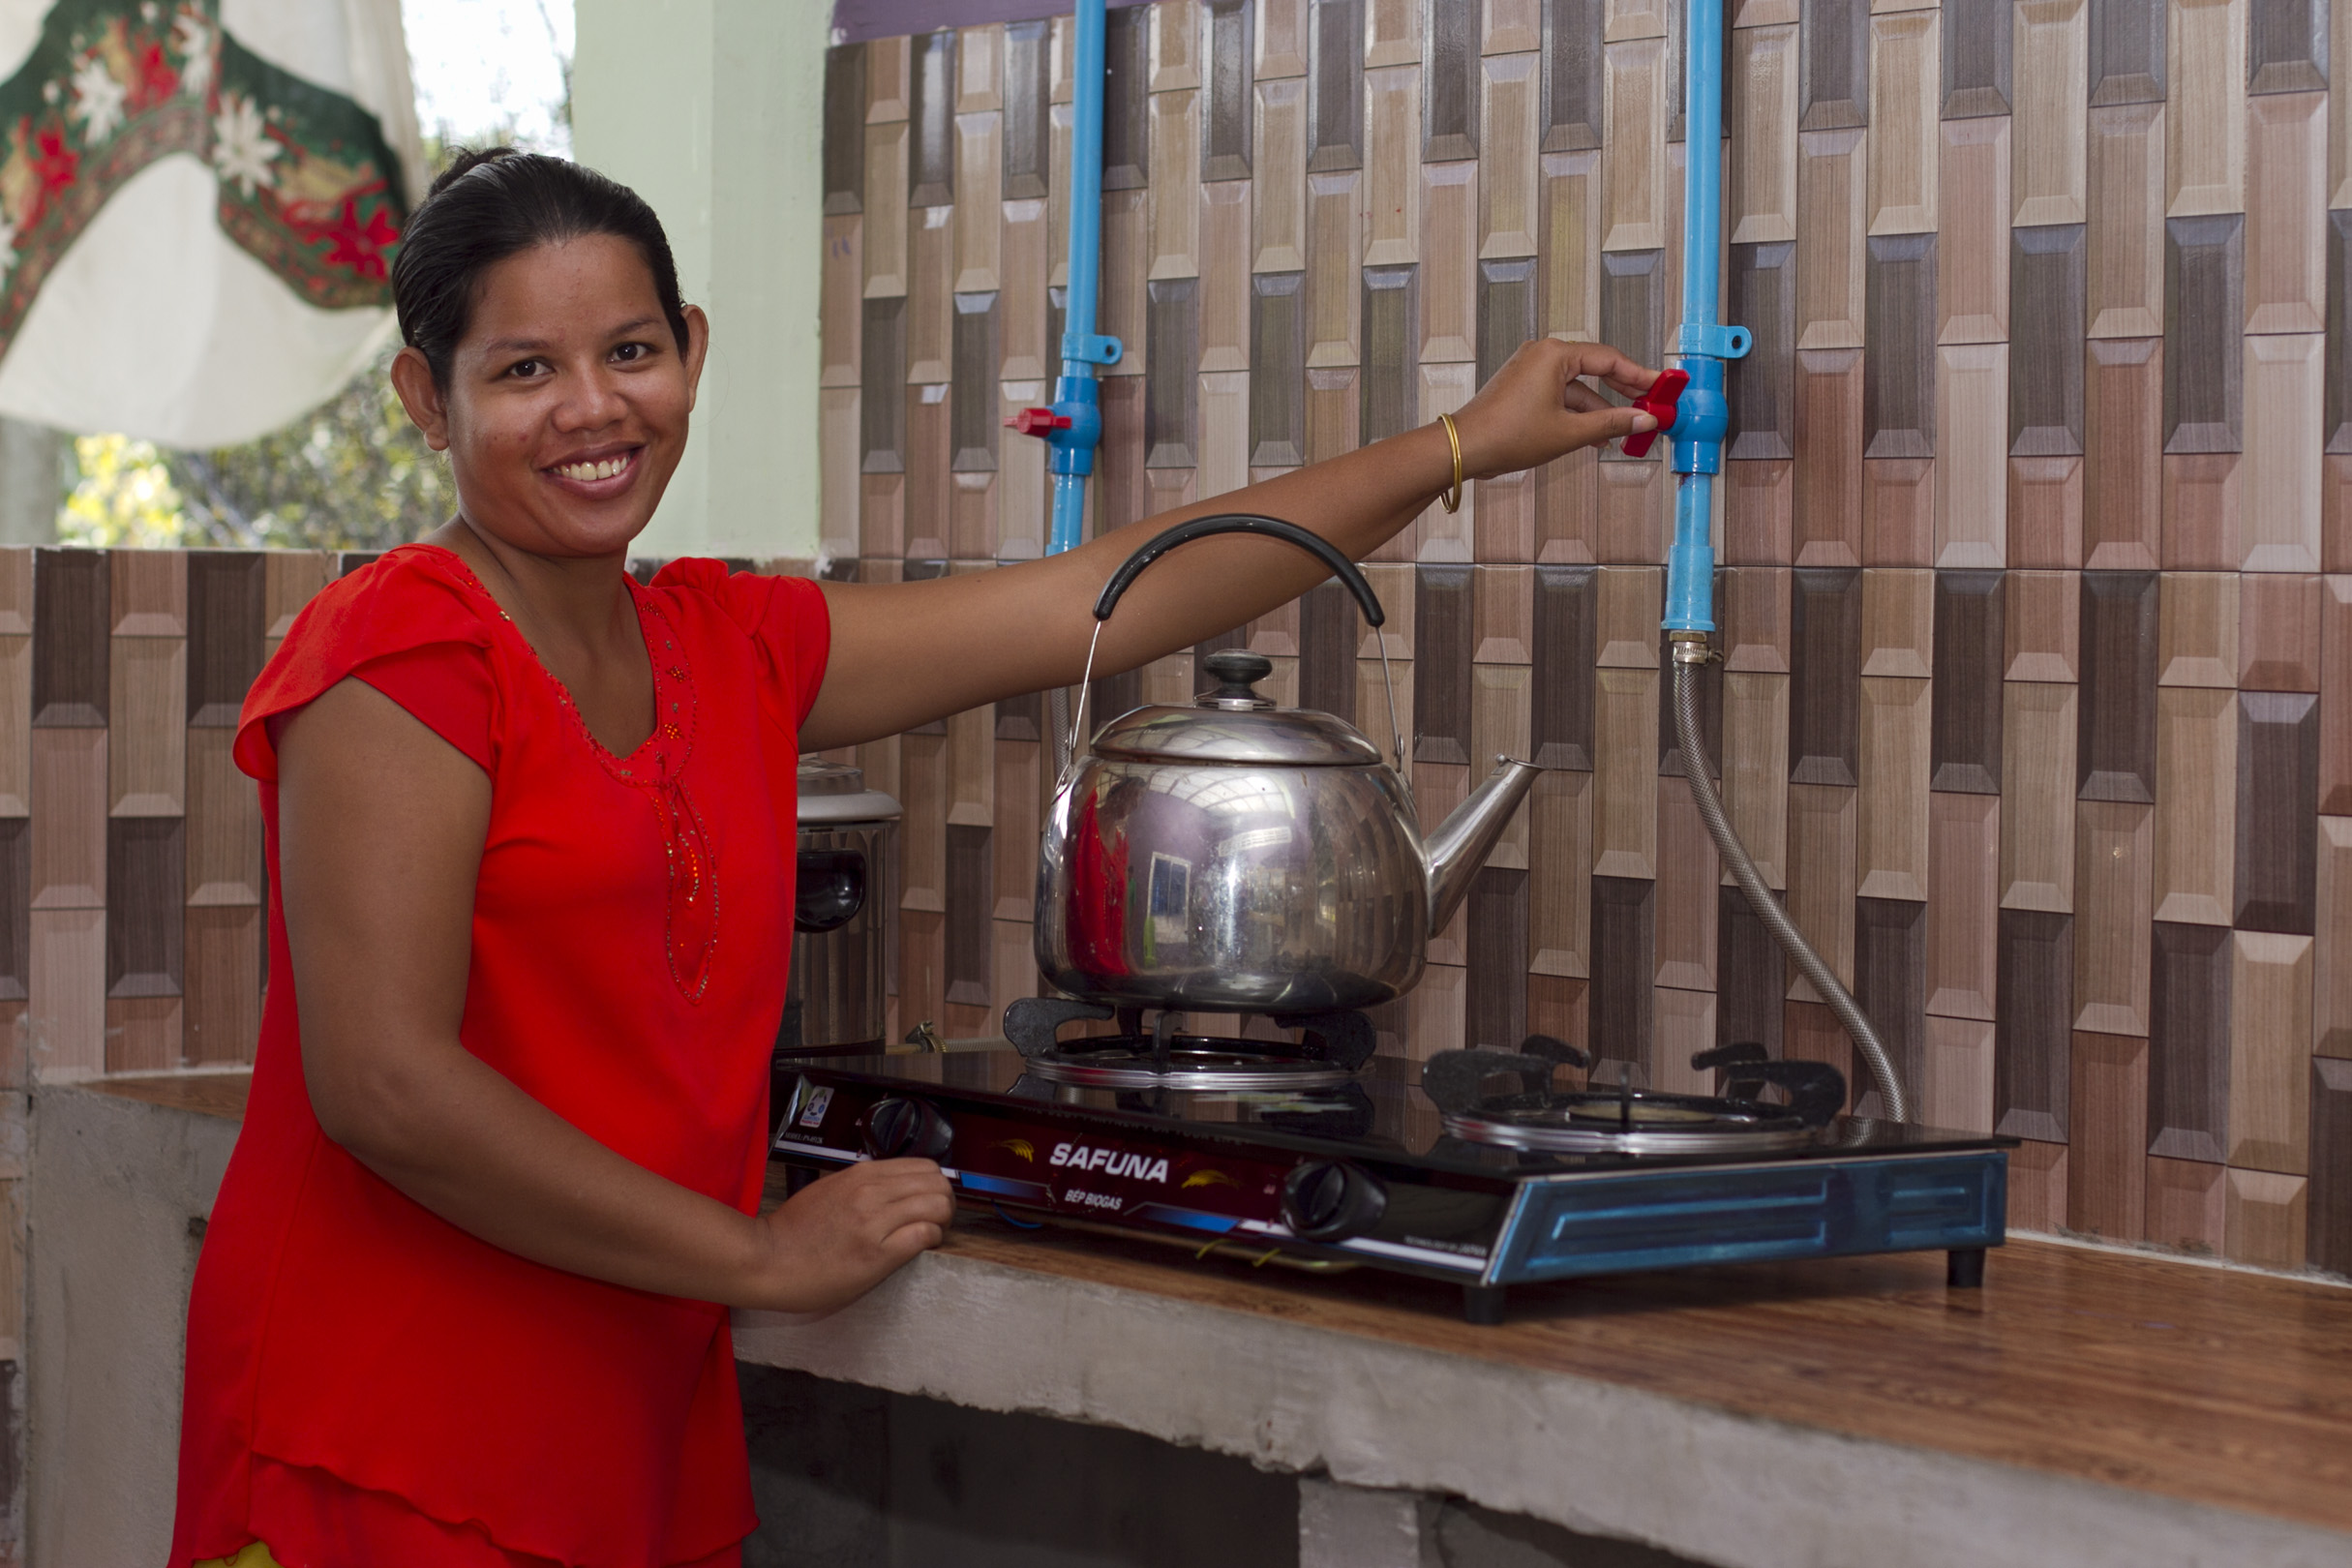 ATEC of Cambodia raises $1.6 million to expand access to clean biogas